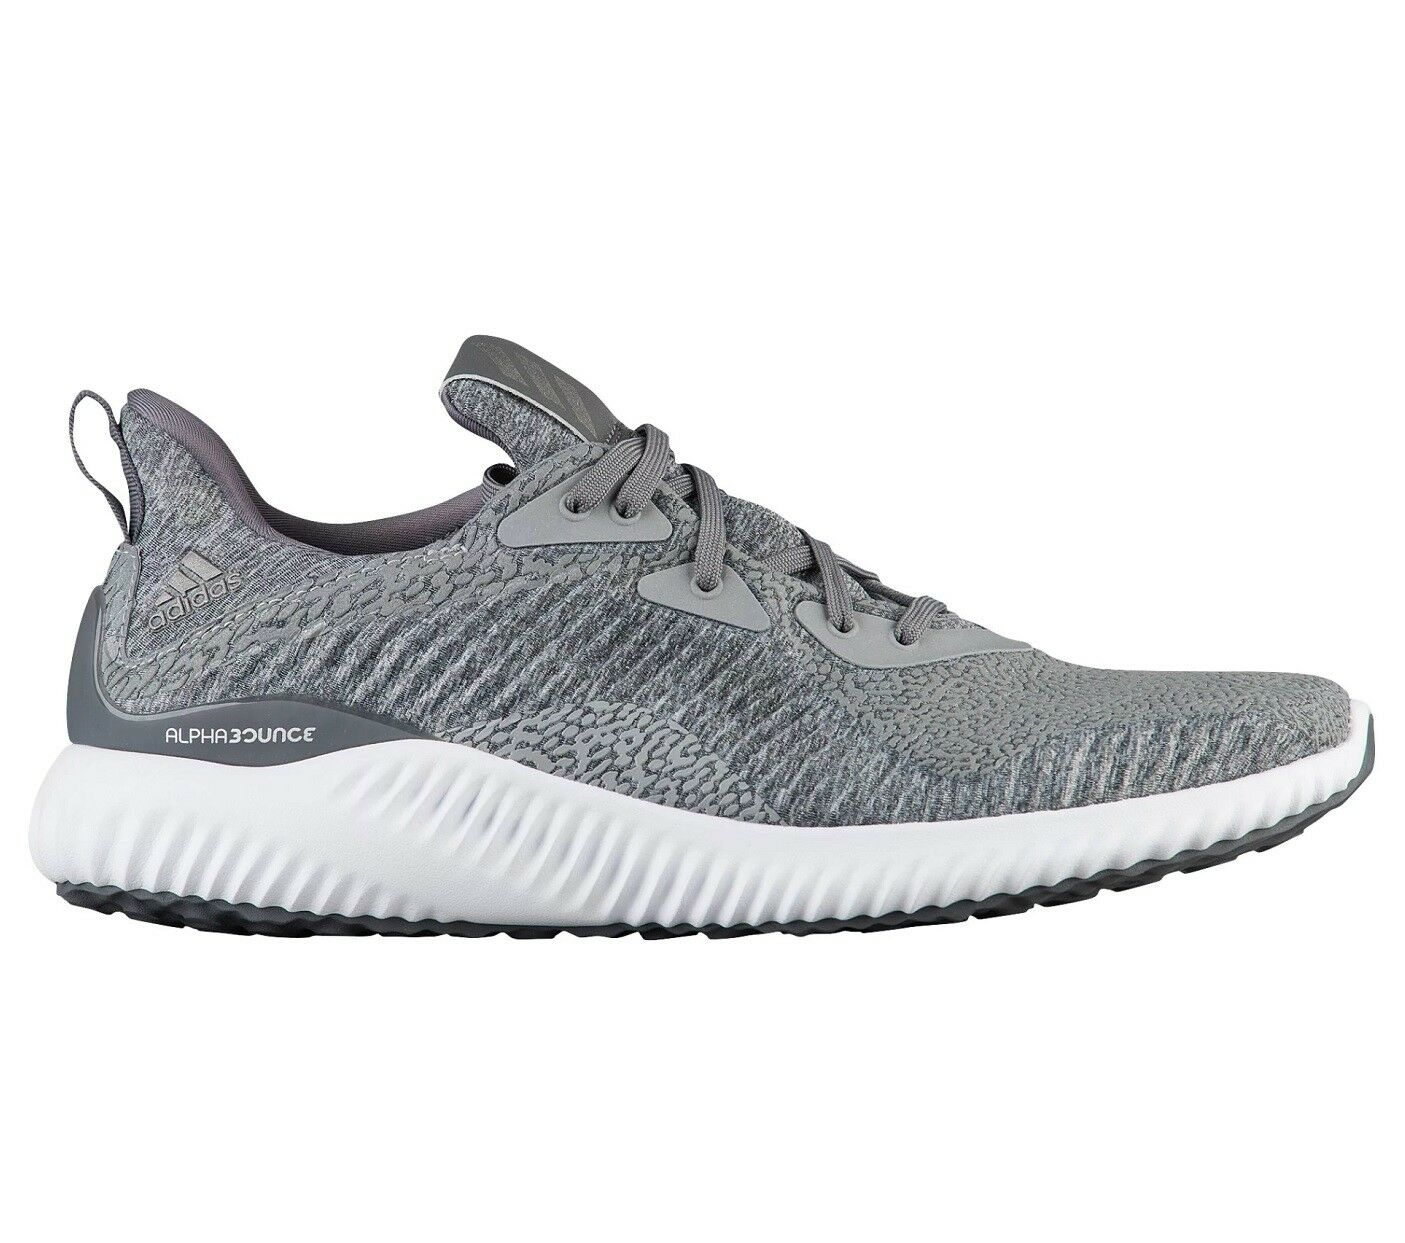 Adidas AlphaBounce HPC Aramis Mens BY4327 Grey ForgedMesh Running shoes Size 12